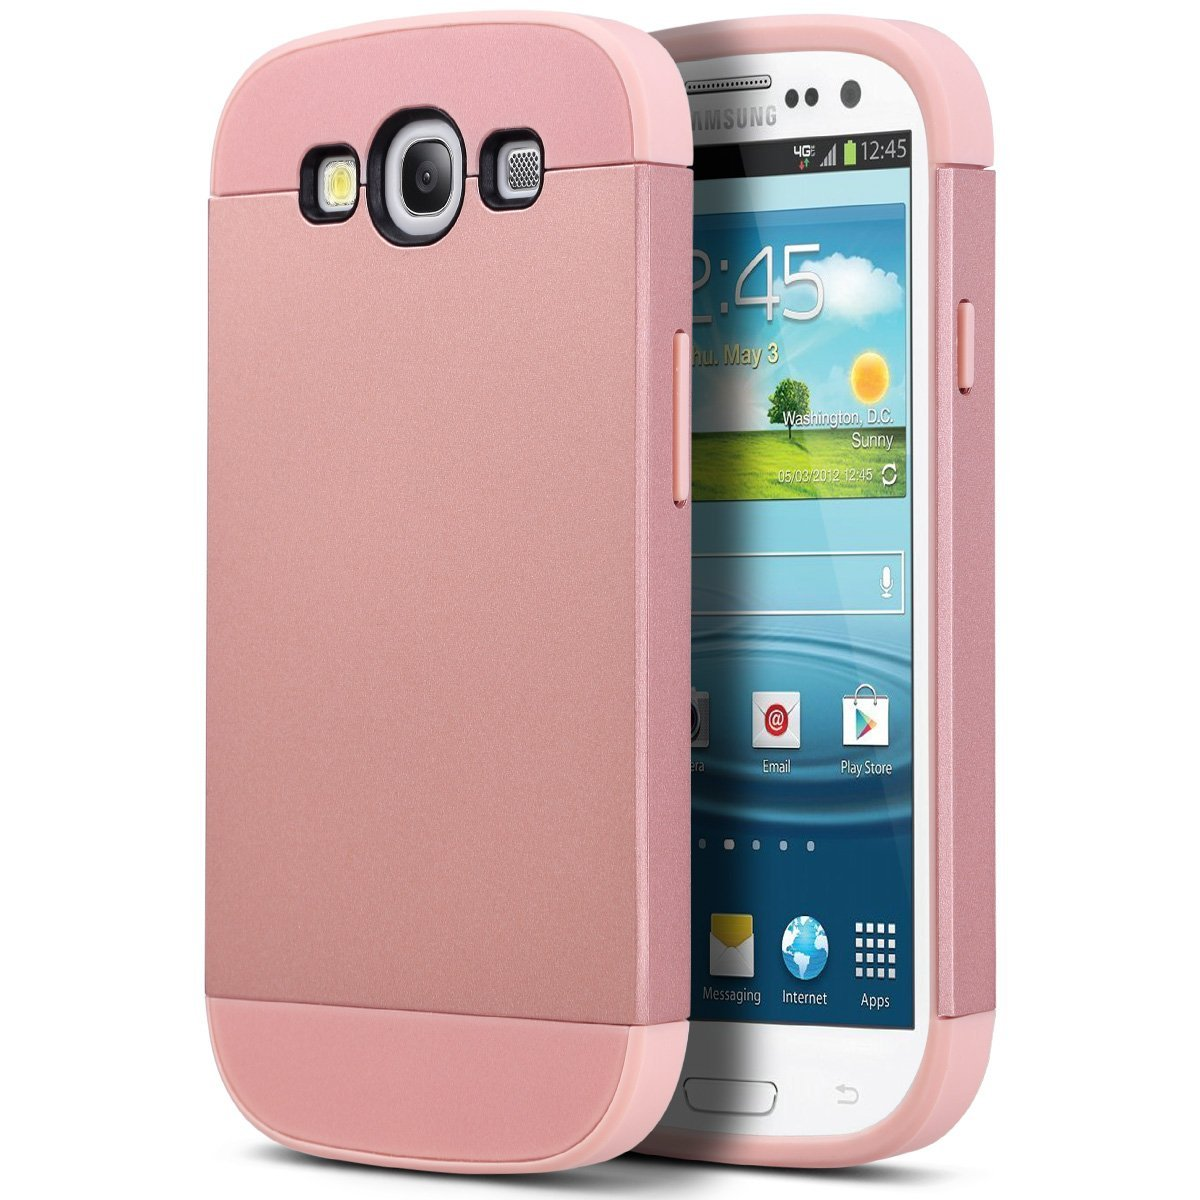 Cheap S3 Gold Case, find S3 Gold Case deals on line at